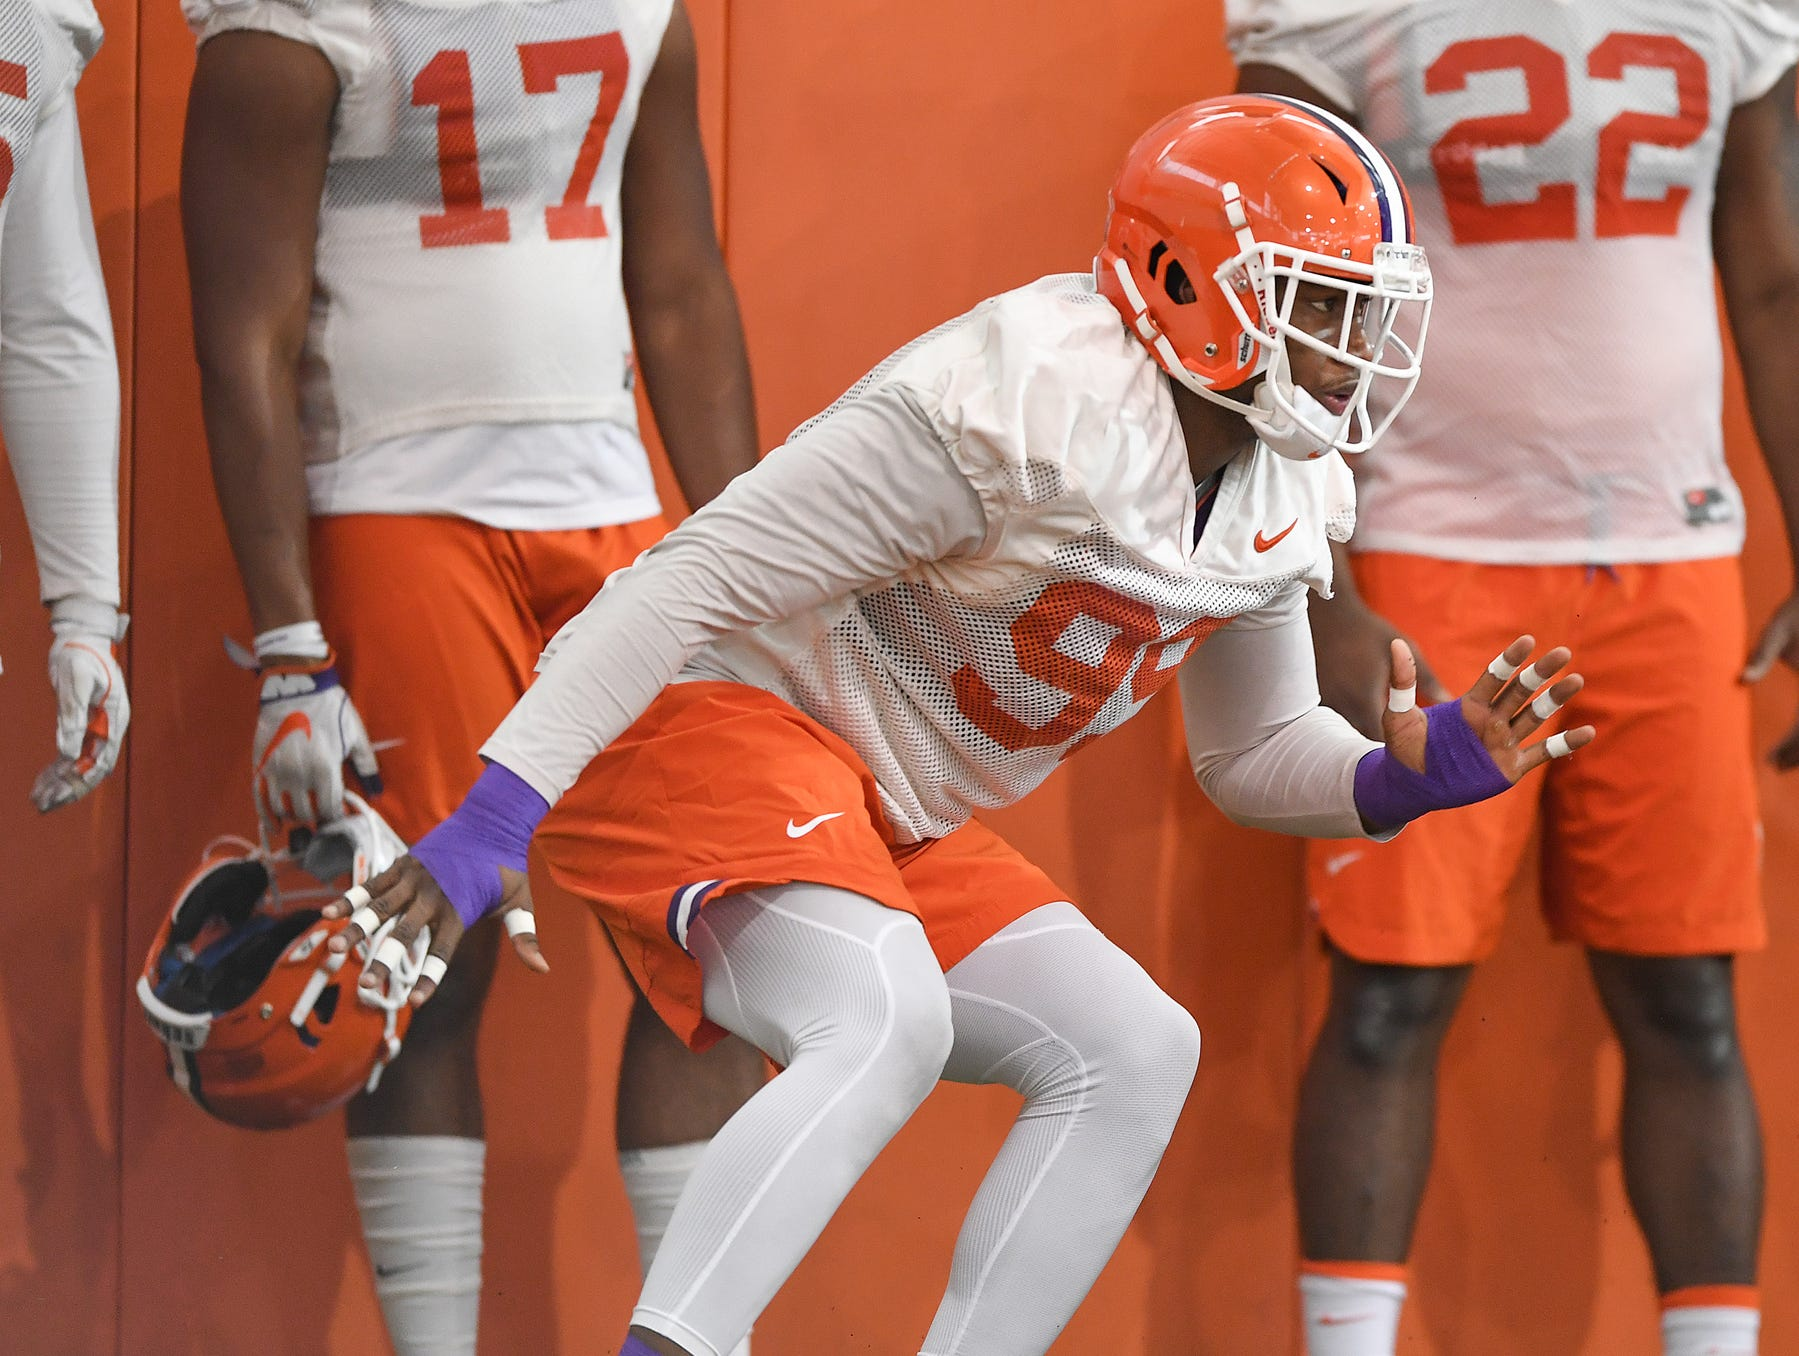 Clemson defensive lineman Clelin Ferrell (99) runs a drill during the Tigers Cotton Bowl practice on Wednesday, December 12, 2018.